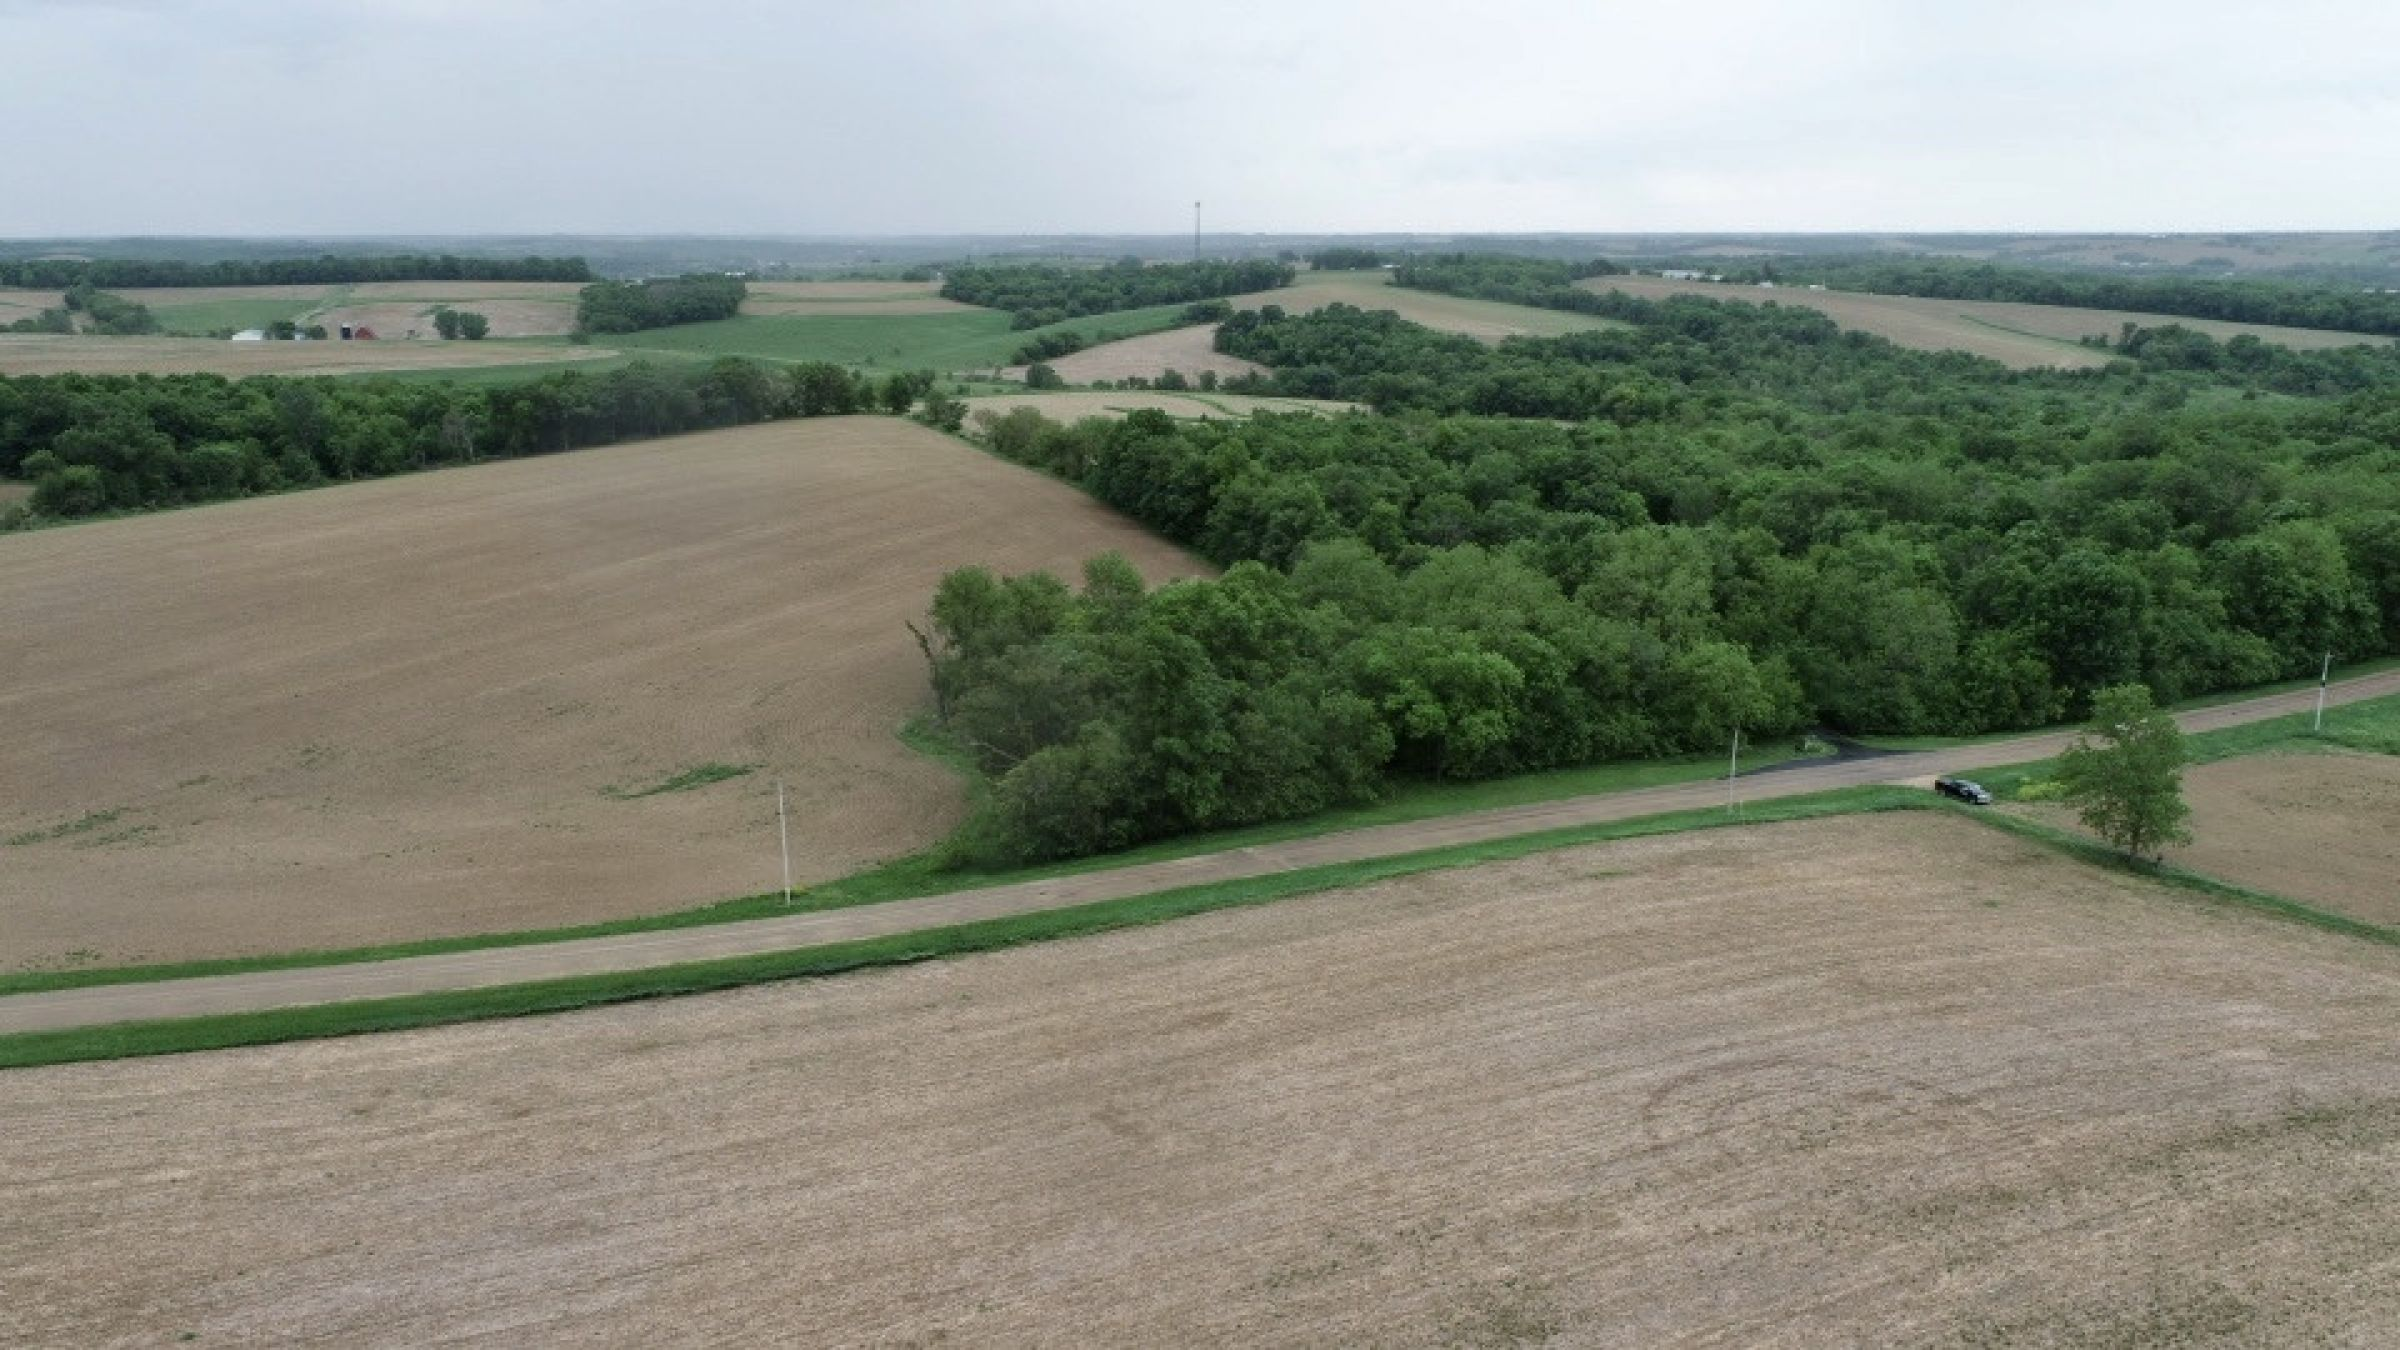 land-lafayette-county-wisconsin-1-acres-listing-number-15559-2-2021-05-28-184445.jpg